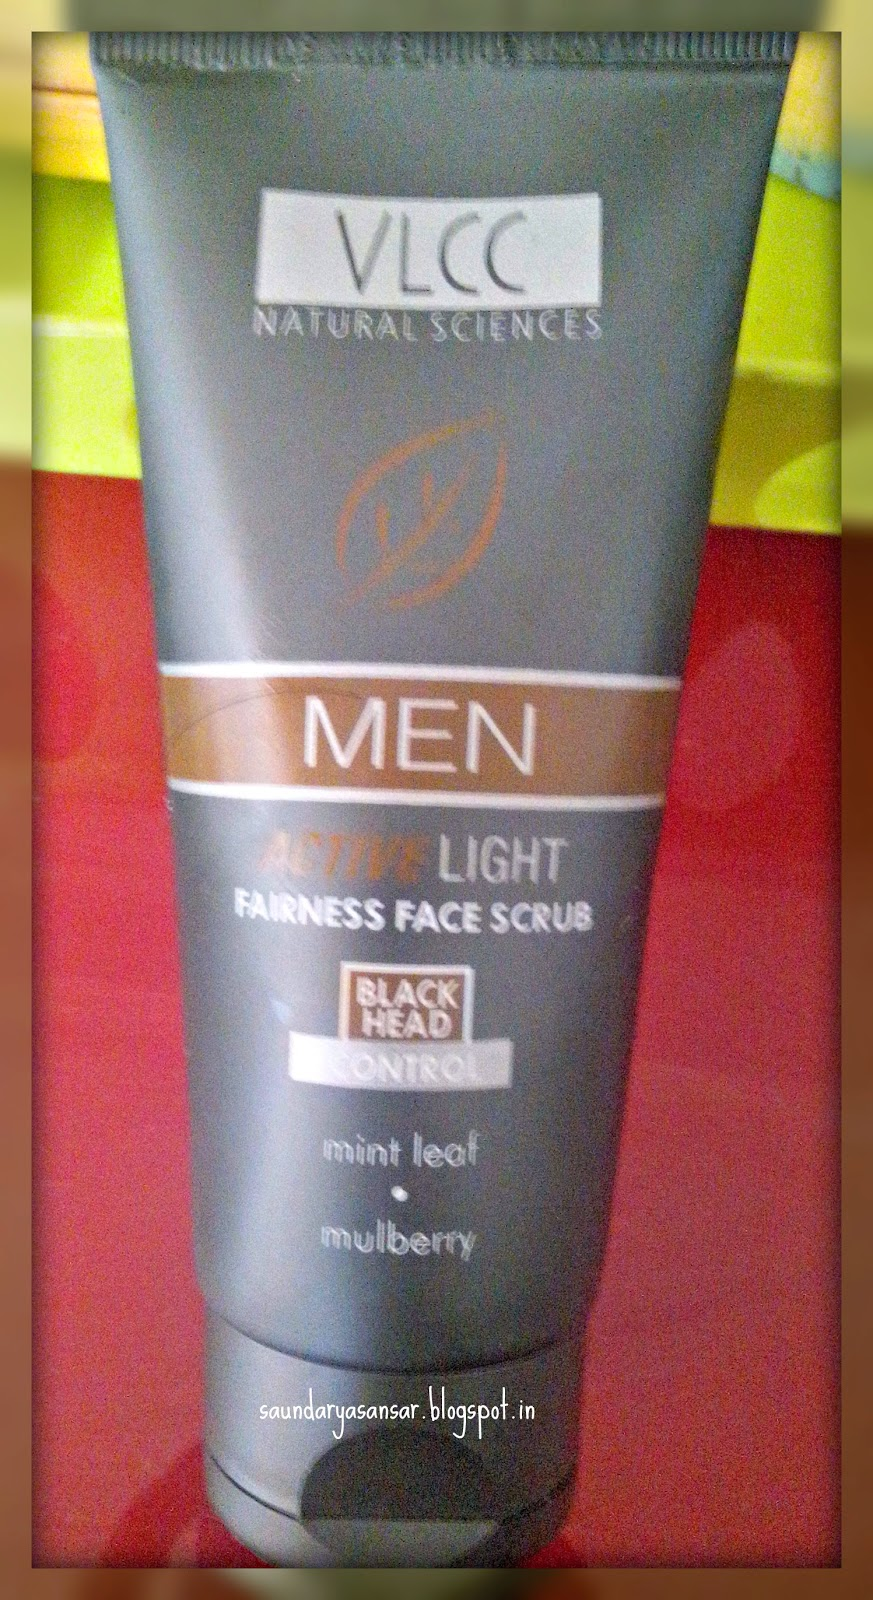 VLCC Active Light Face Scrub for Men Review